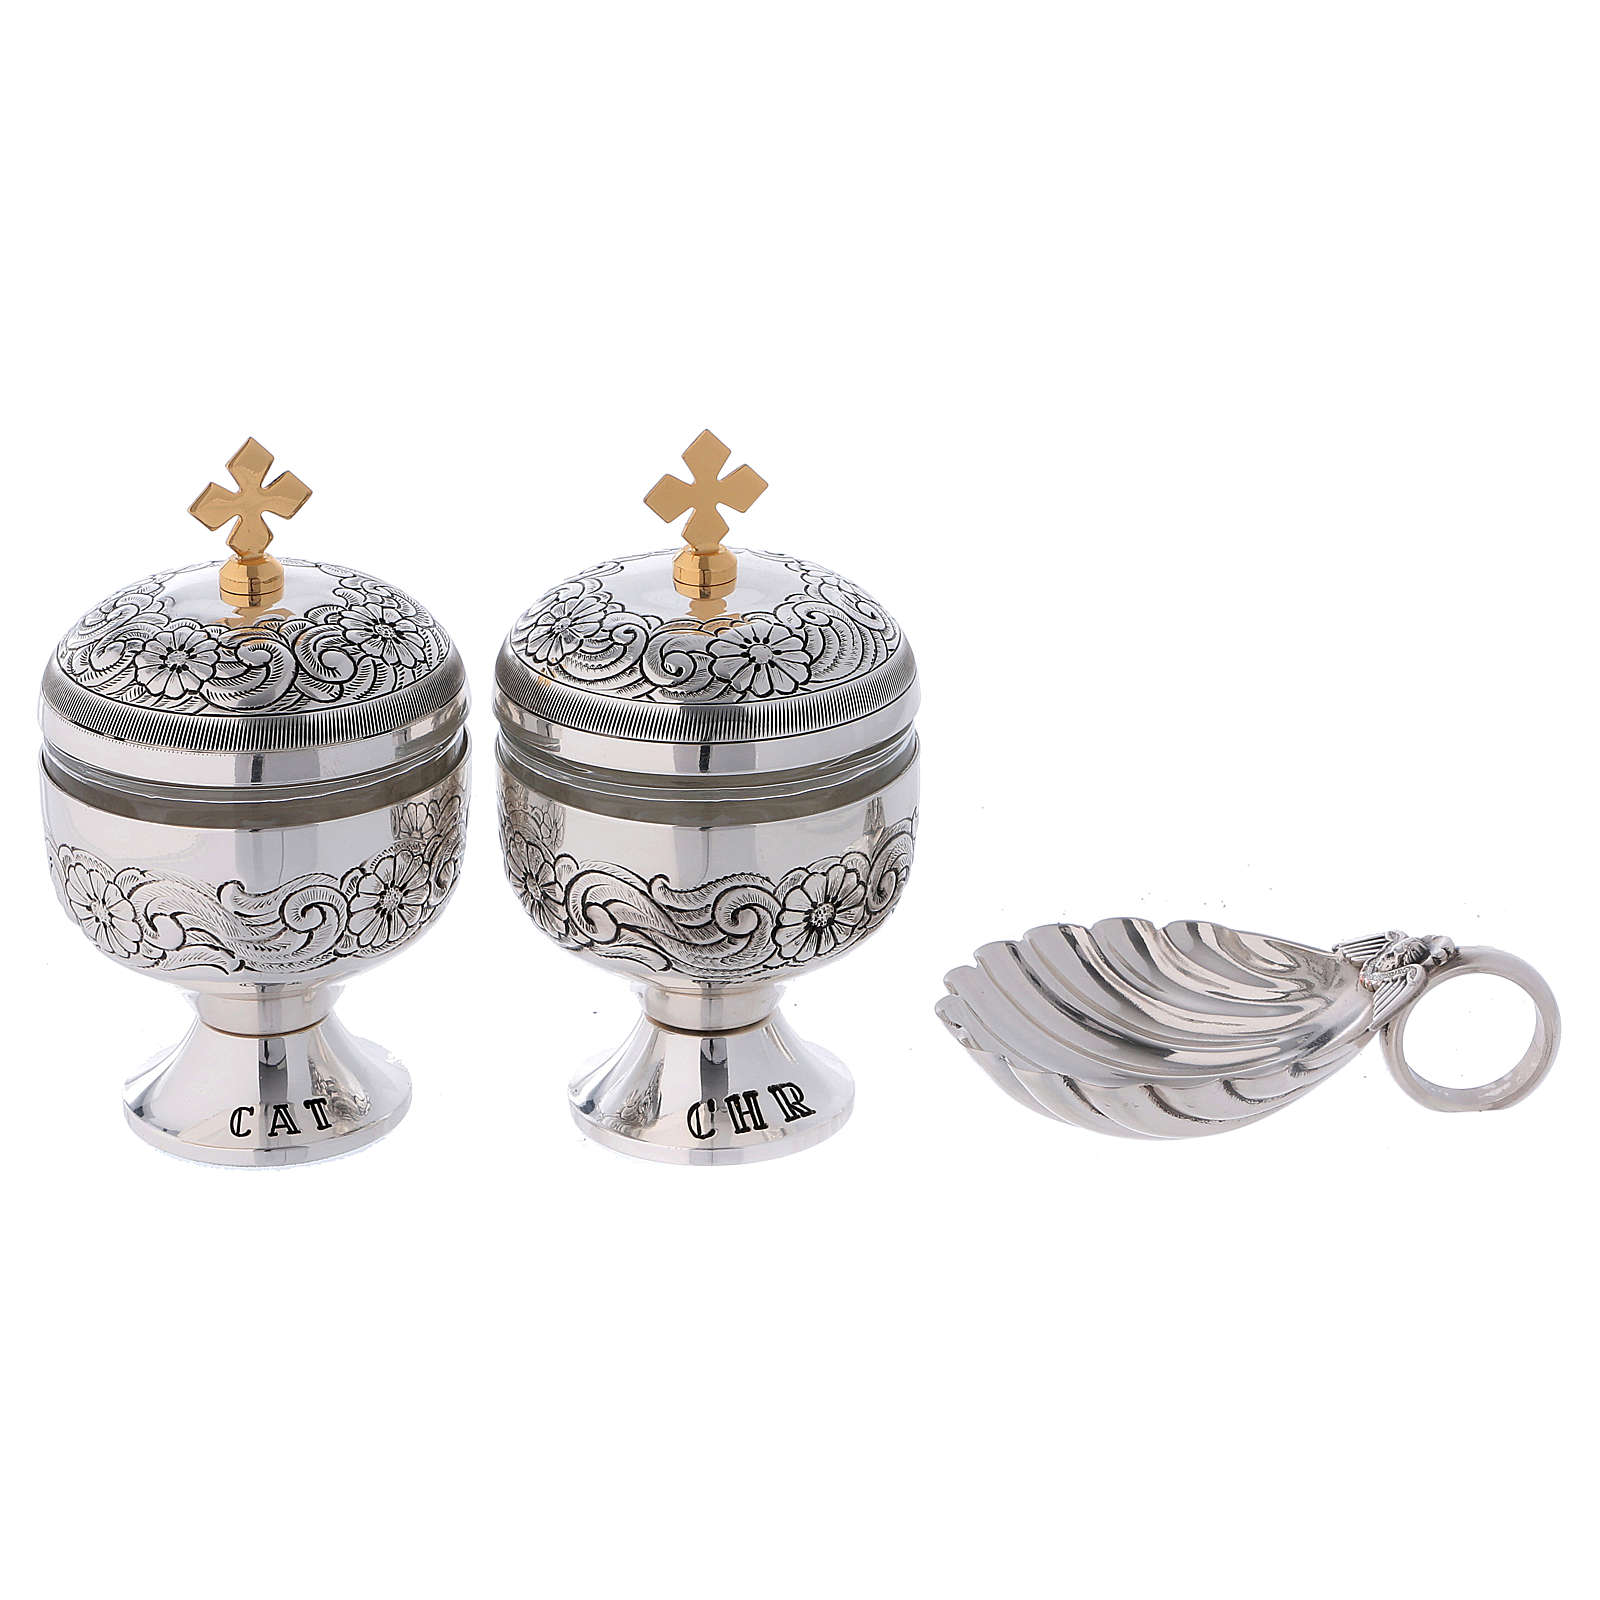 Holy oils: baptism set with two vases and a shell 3